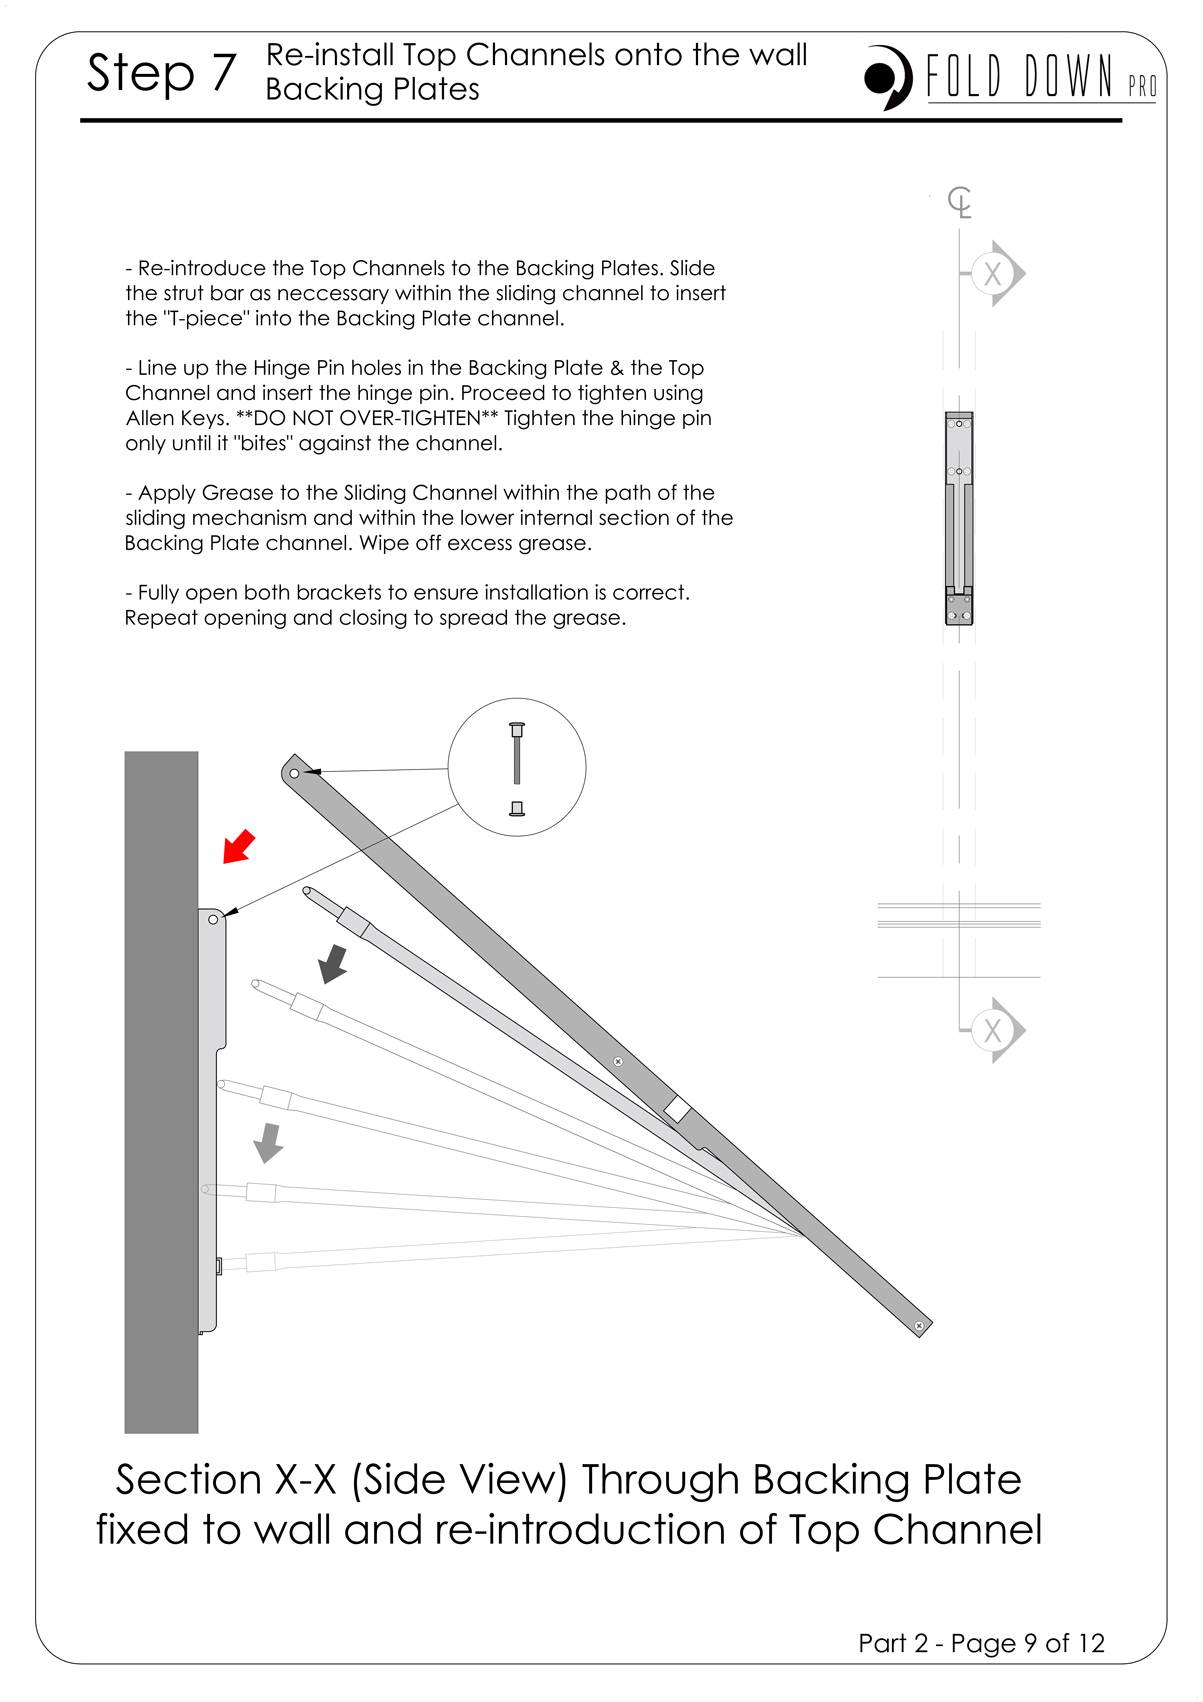 FDP Wall Mounted Folding Bracket Instruction Page 9